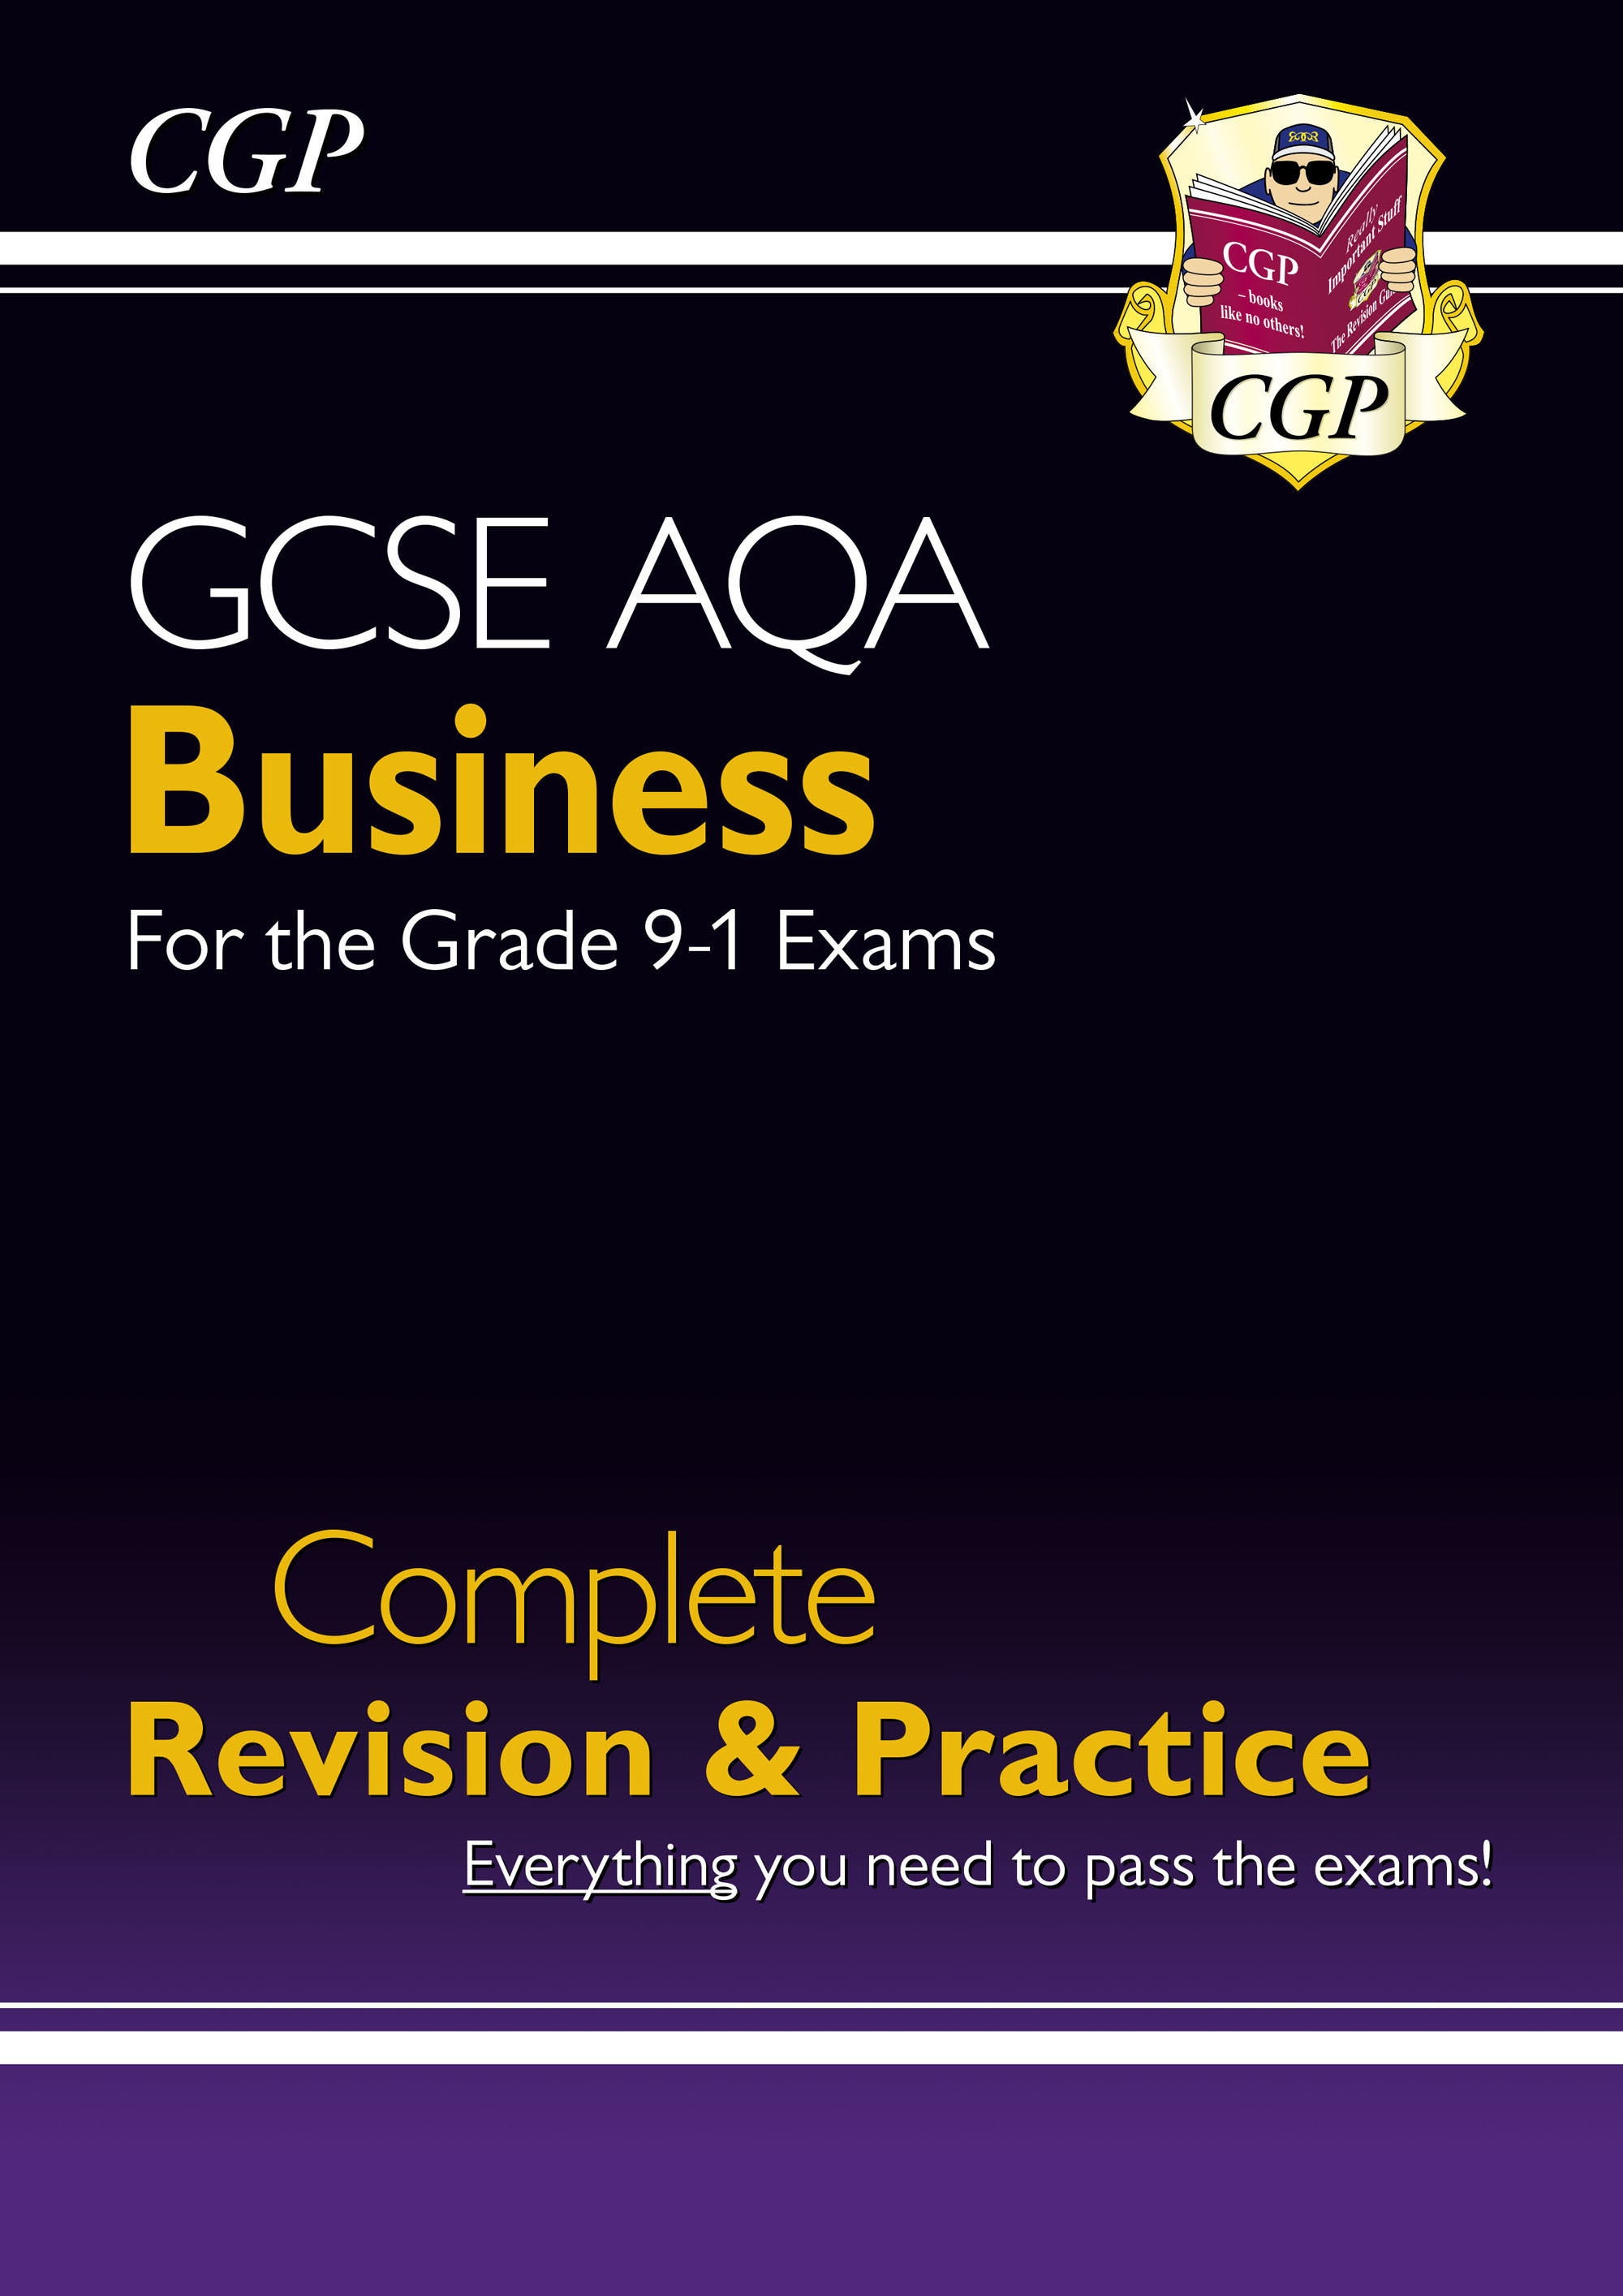 BUAS41DK - New GCSE Business AQA Complete Revision and Practice - Grade 9-1 Course